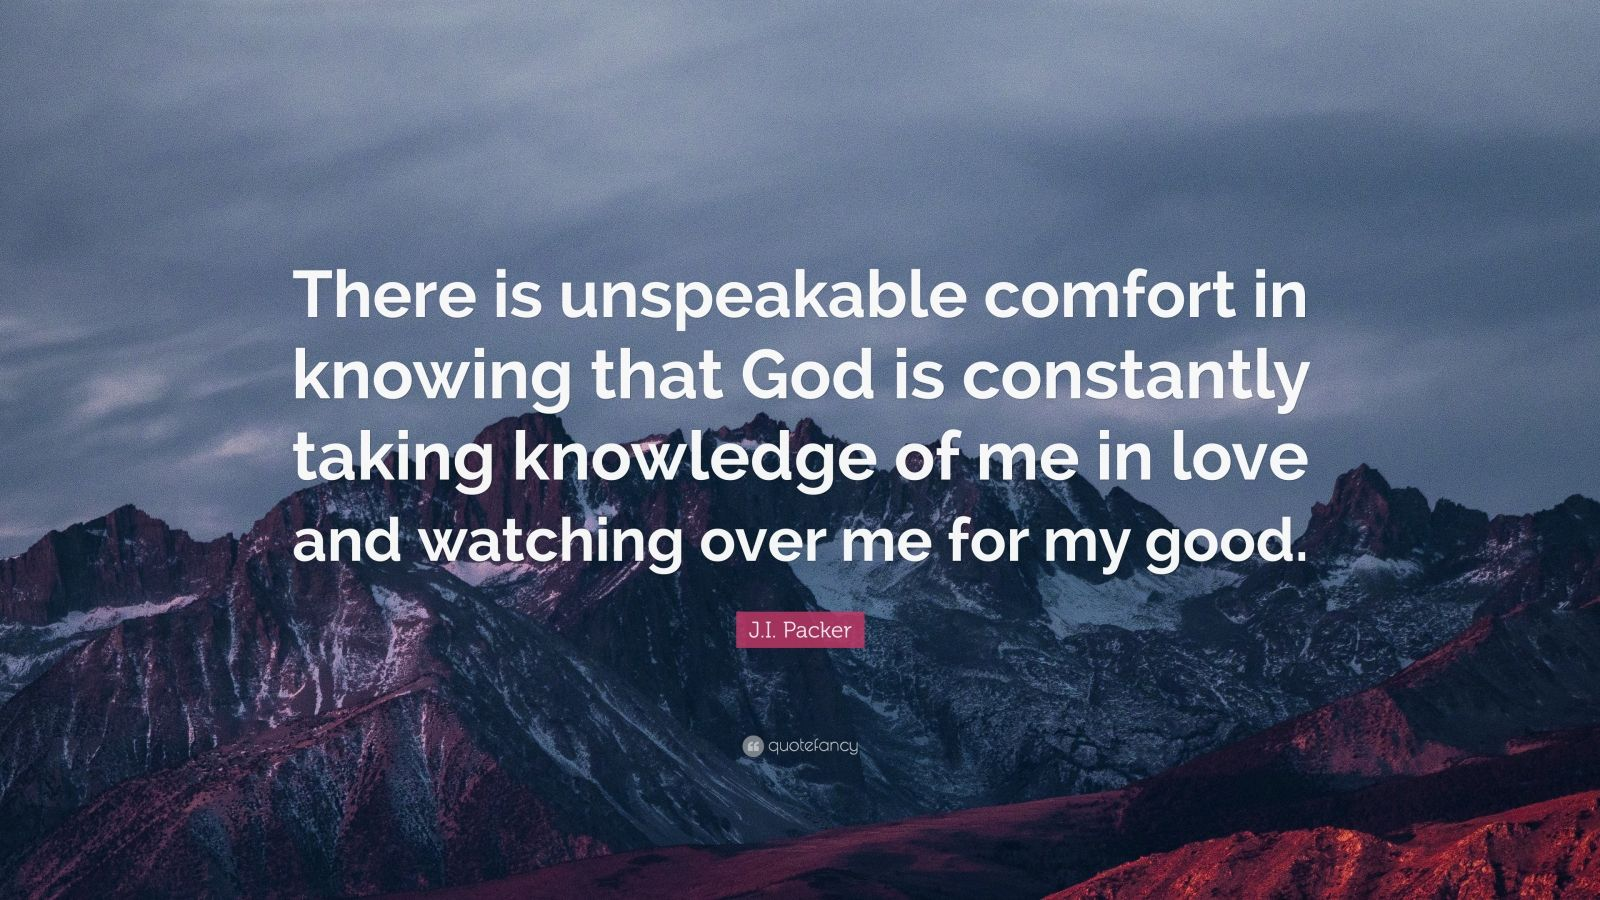 """J.I. Packer Quote: """"There is unspeakable comfort in knowing that God is constantly taking knowledge of me in love and watching over me for my good."""""""